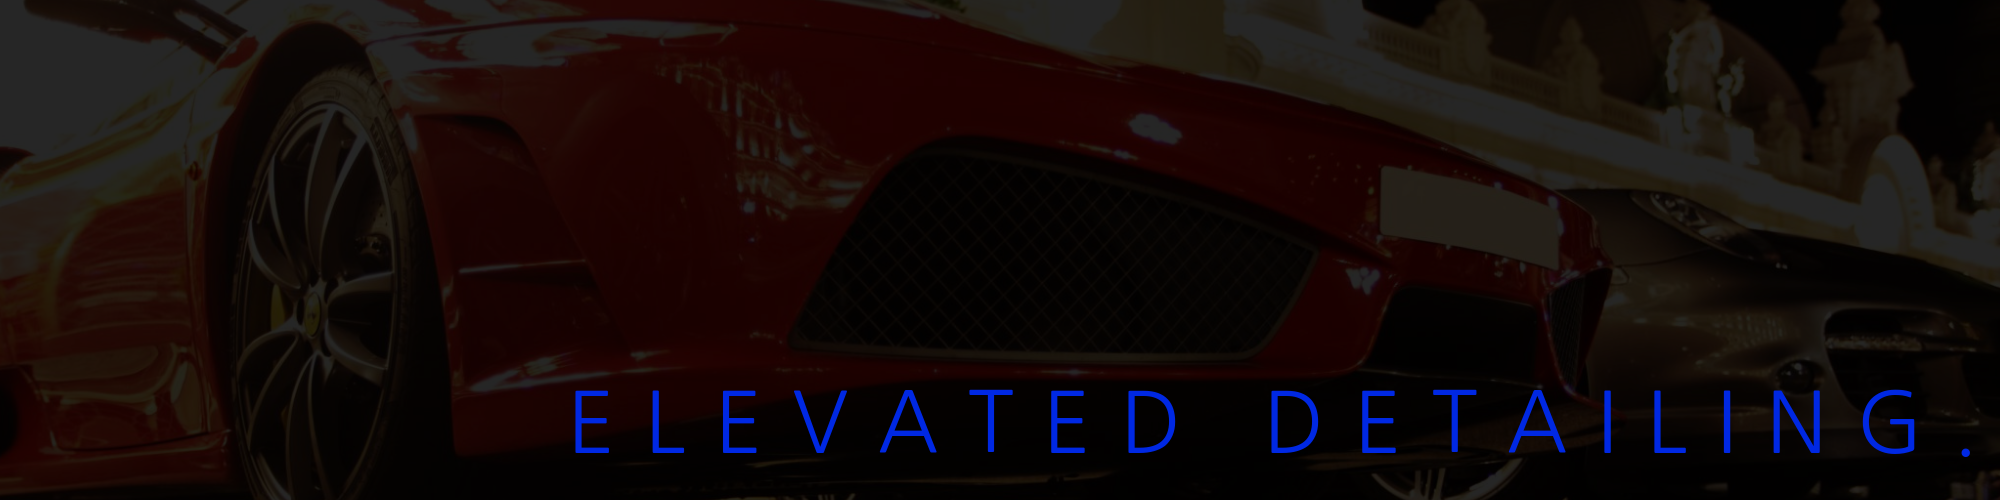 Elevated Auto Detailing